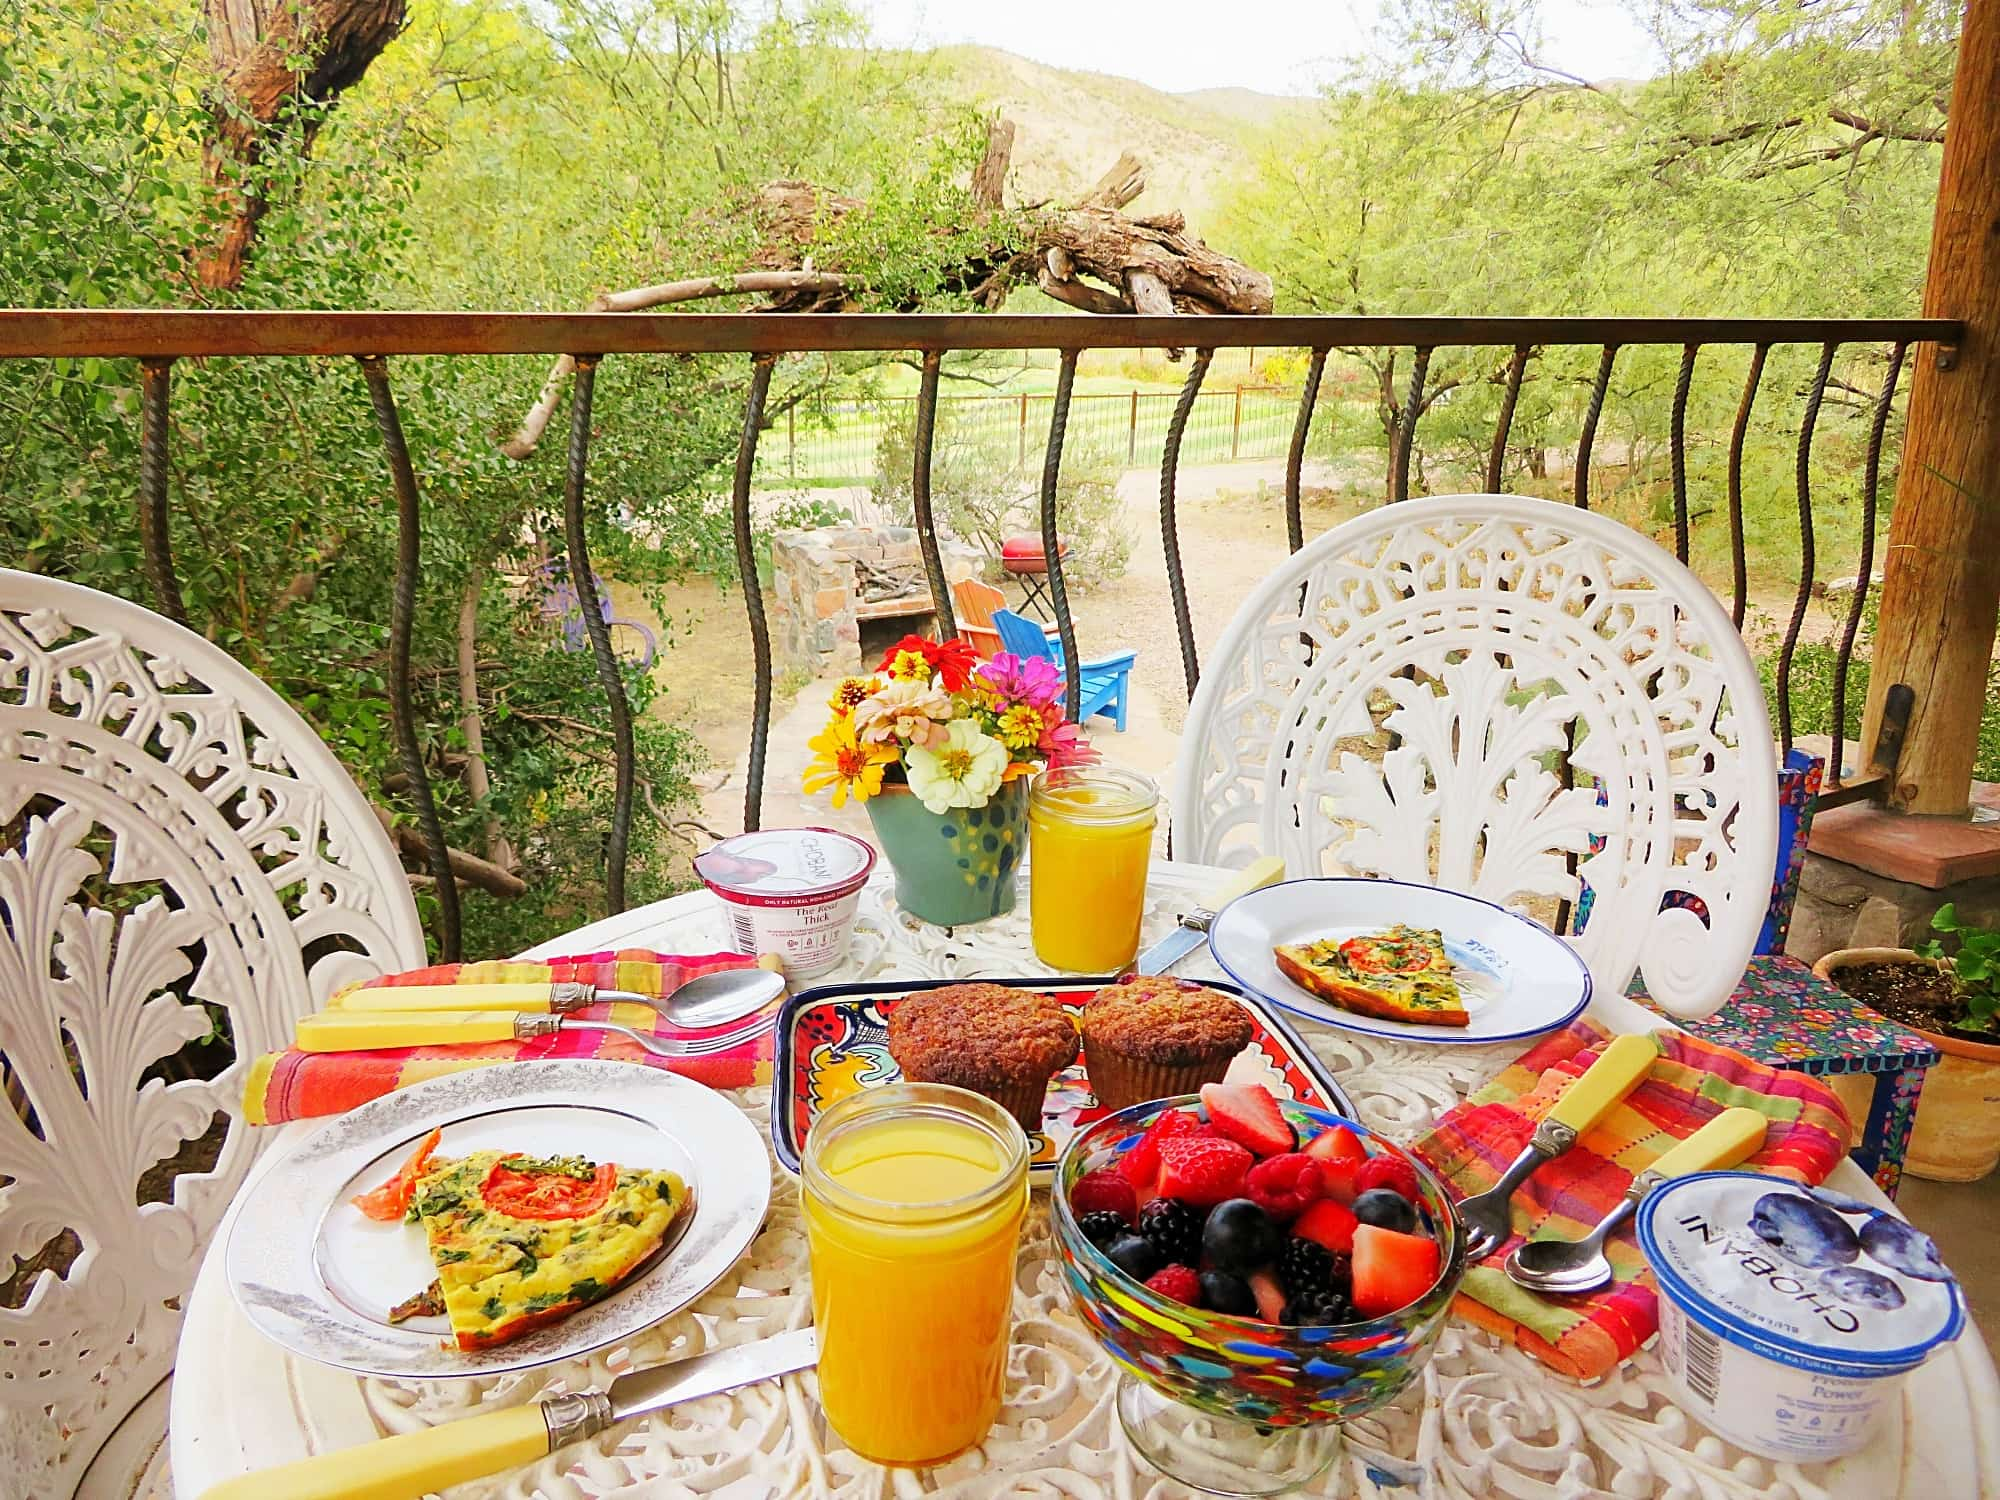 Our pretty alfresco breakfast at Aravaipa Farms Inn